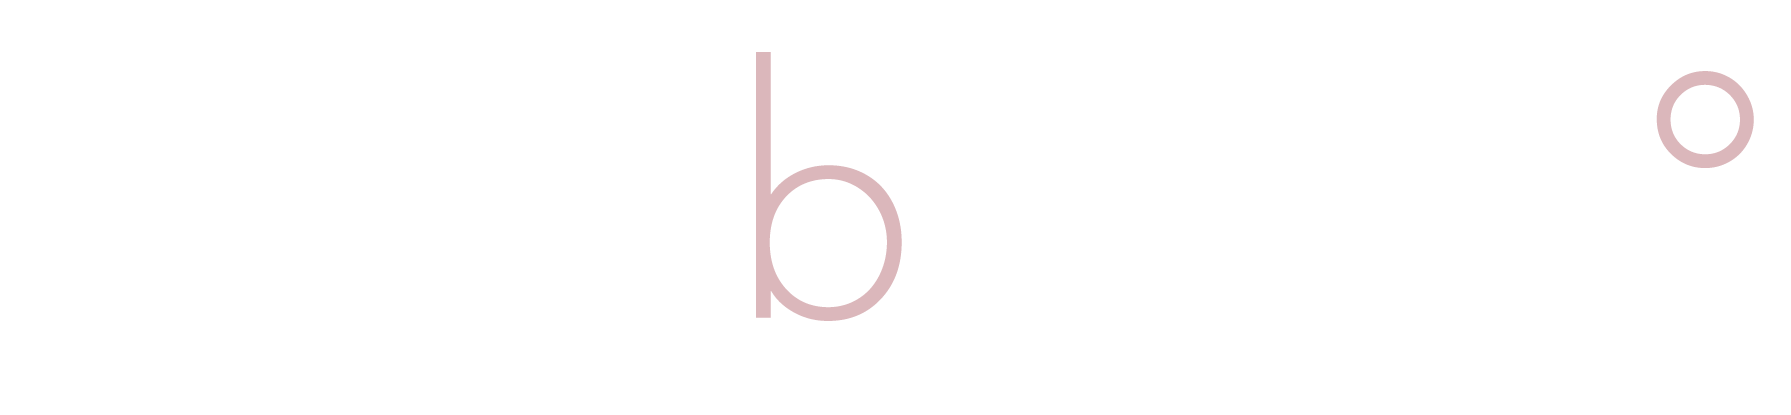 pab_logo_weiss.png